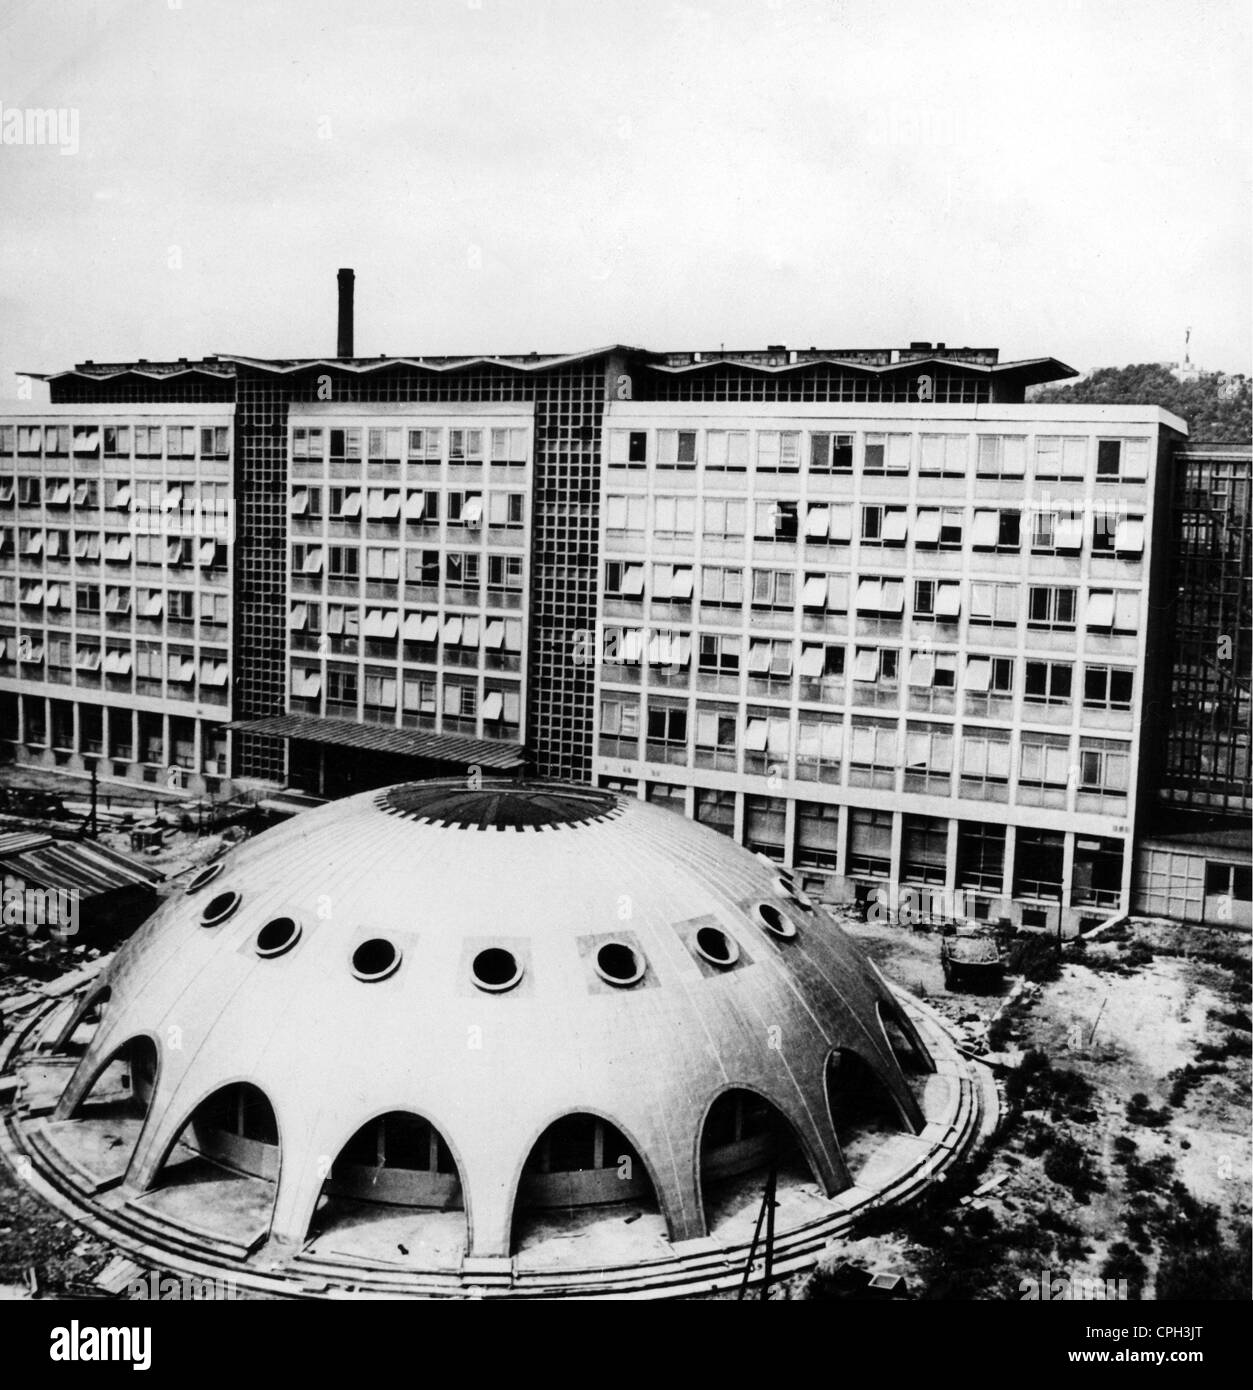 science, nuclear physics, nuclear reactor of the Eotvos Lorand University, Budapest, Hungary, 1960s, Additional Stock Photo